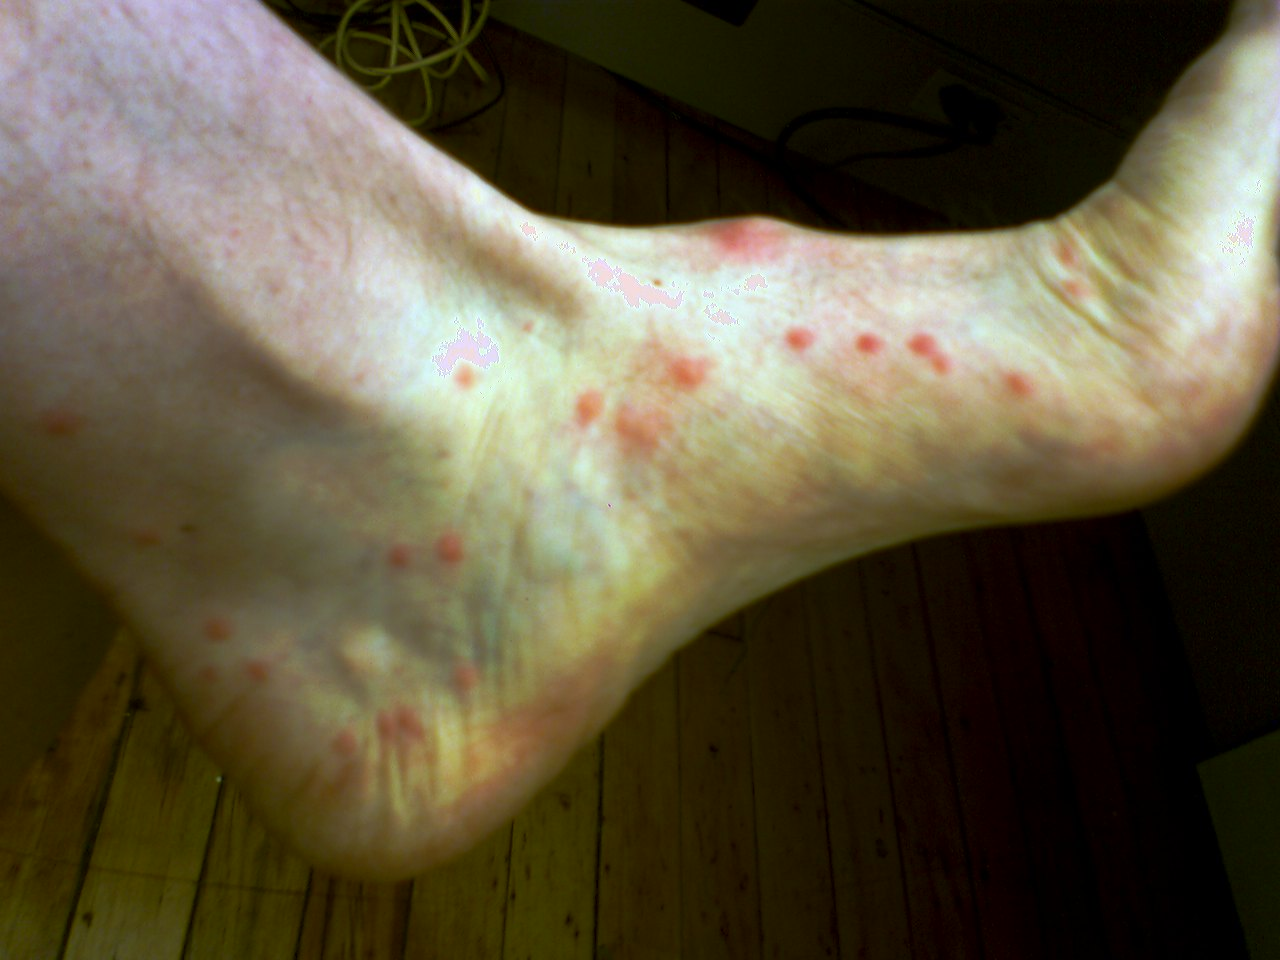 Flea Bites On Ankles - Doctor answers on HealthTap